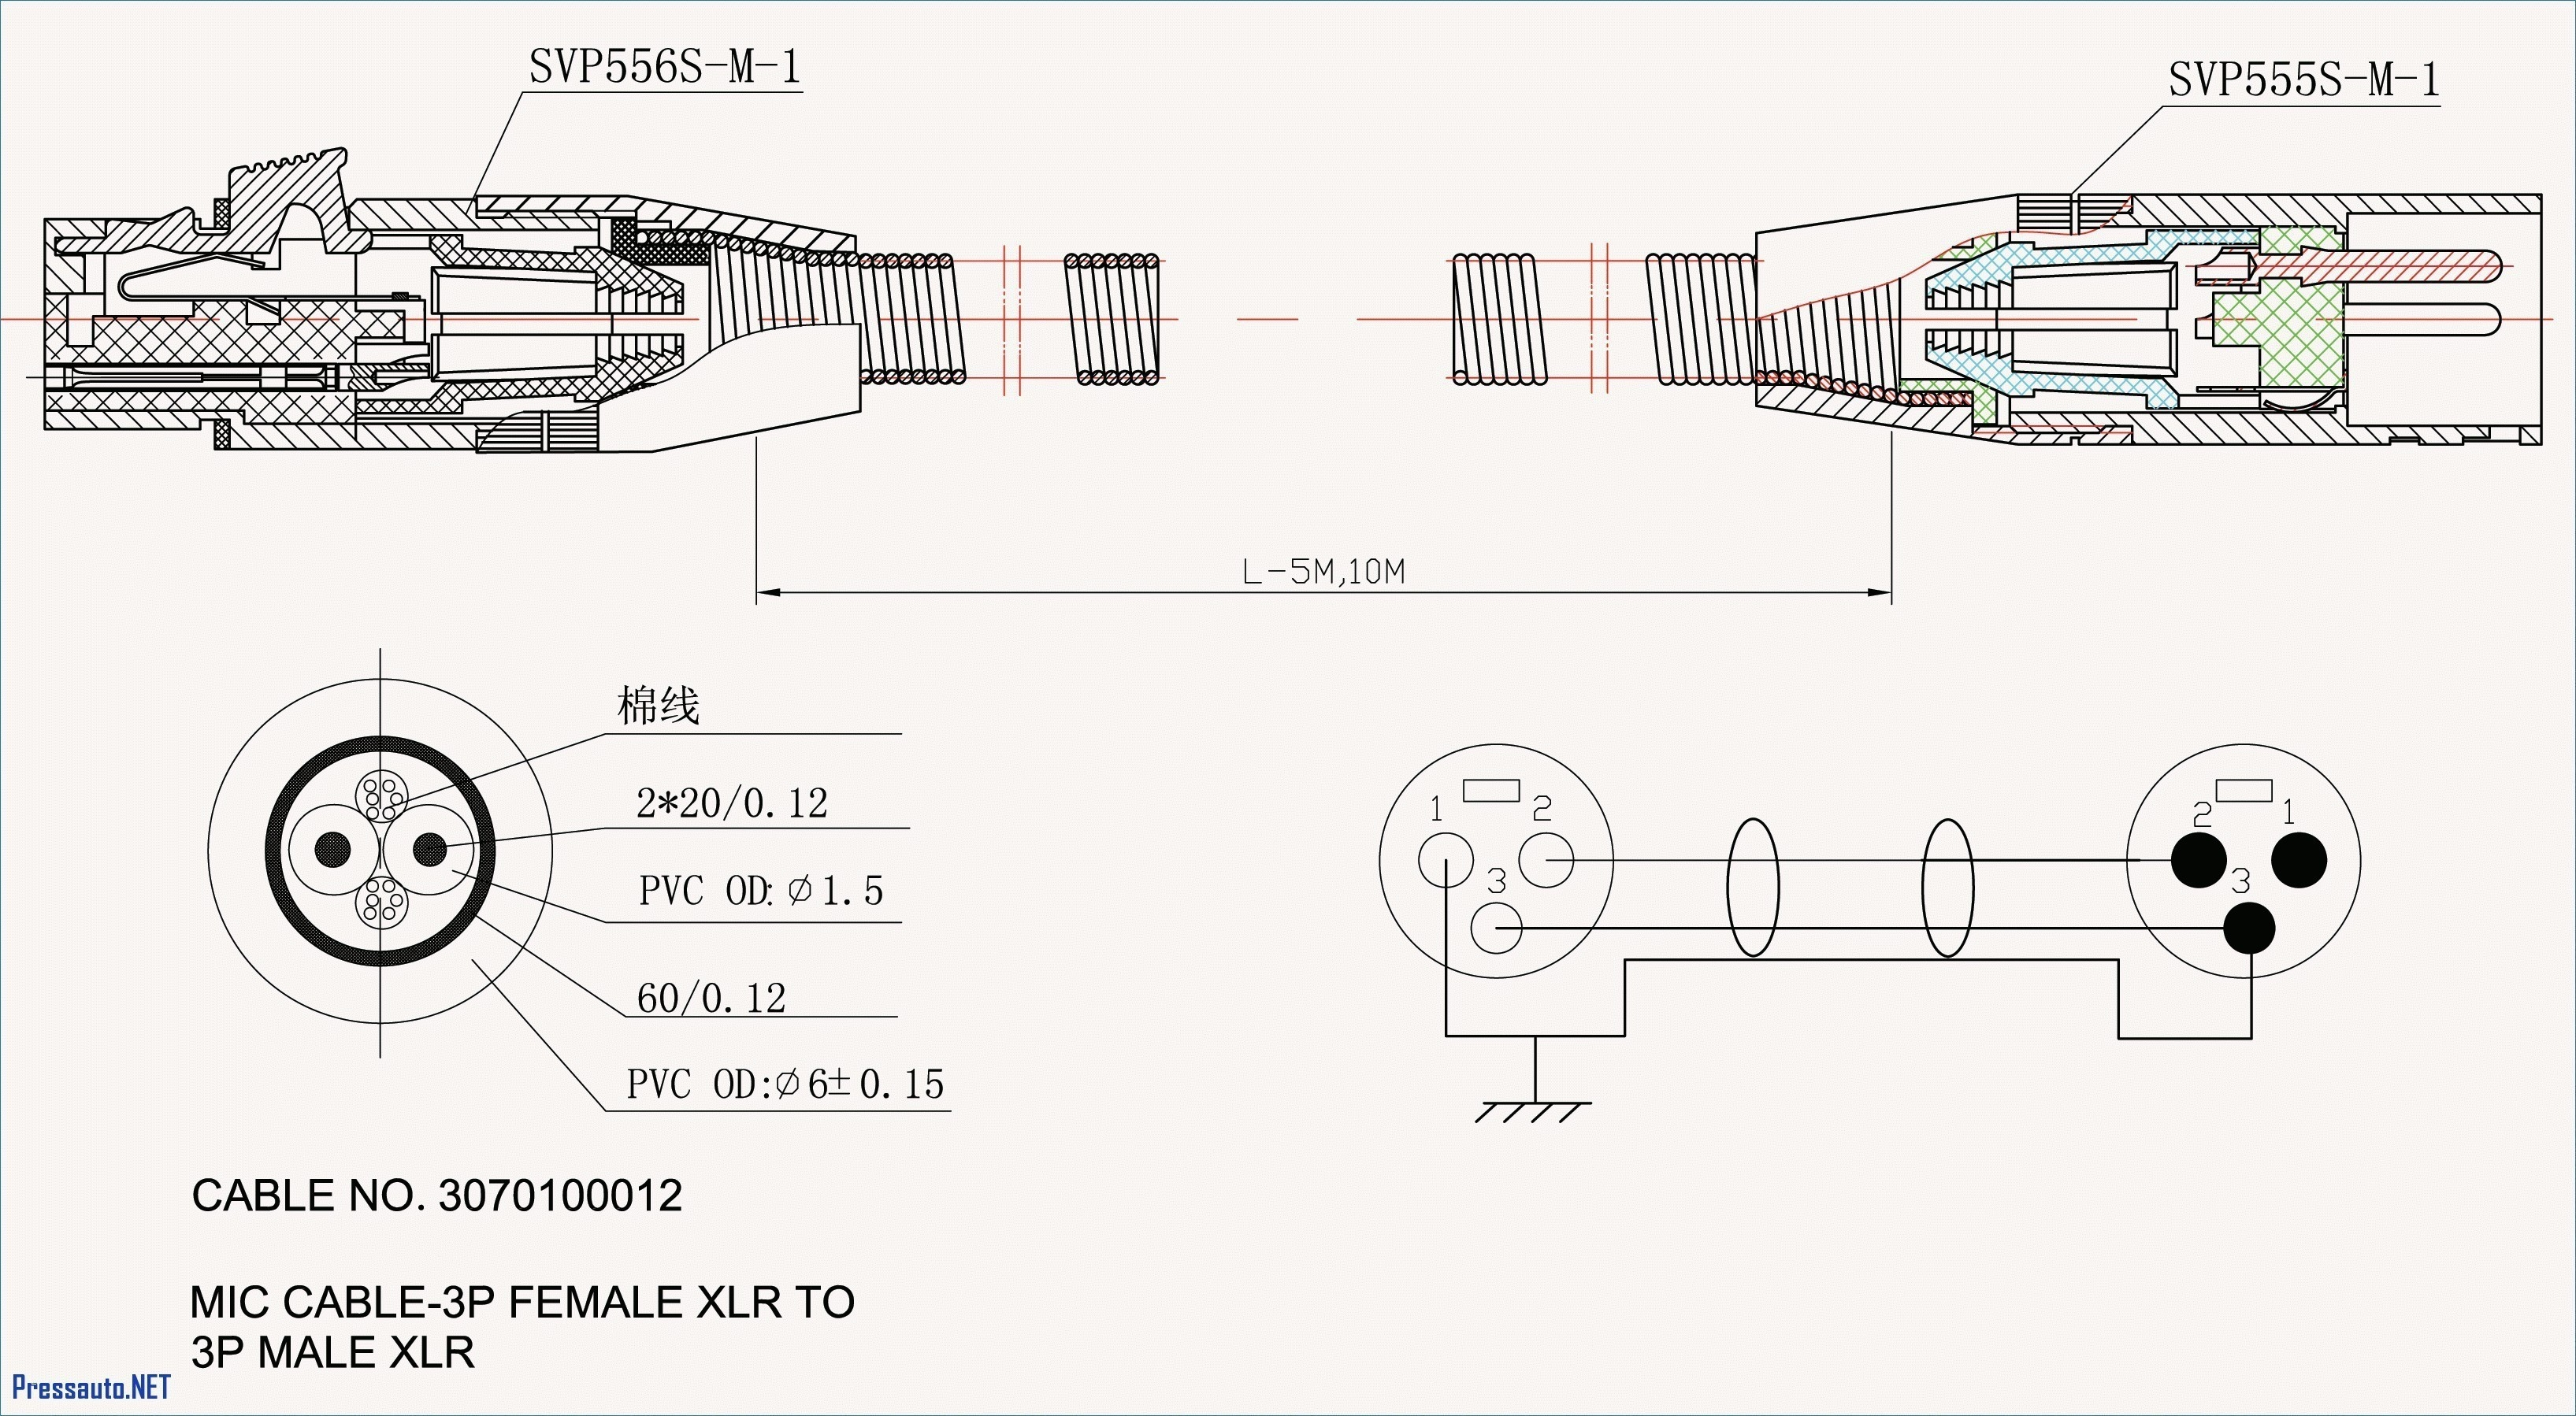 ground fault receptacle wiring diagram Download-Wiring Diagram Alternator Bosch 2019 Wiring Diagram Alternator Bosch Best Td42 Alternator Wiring Diagram 5-m